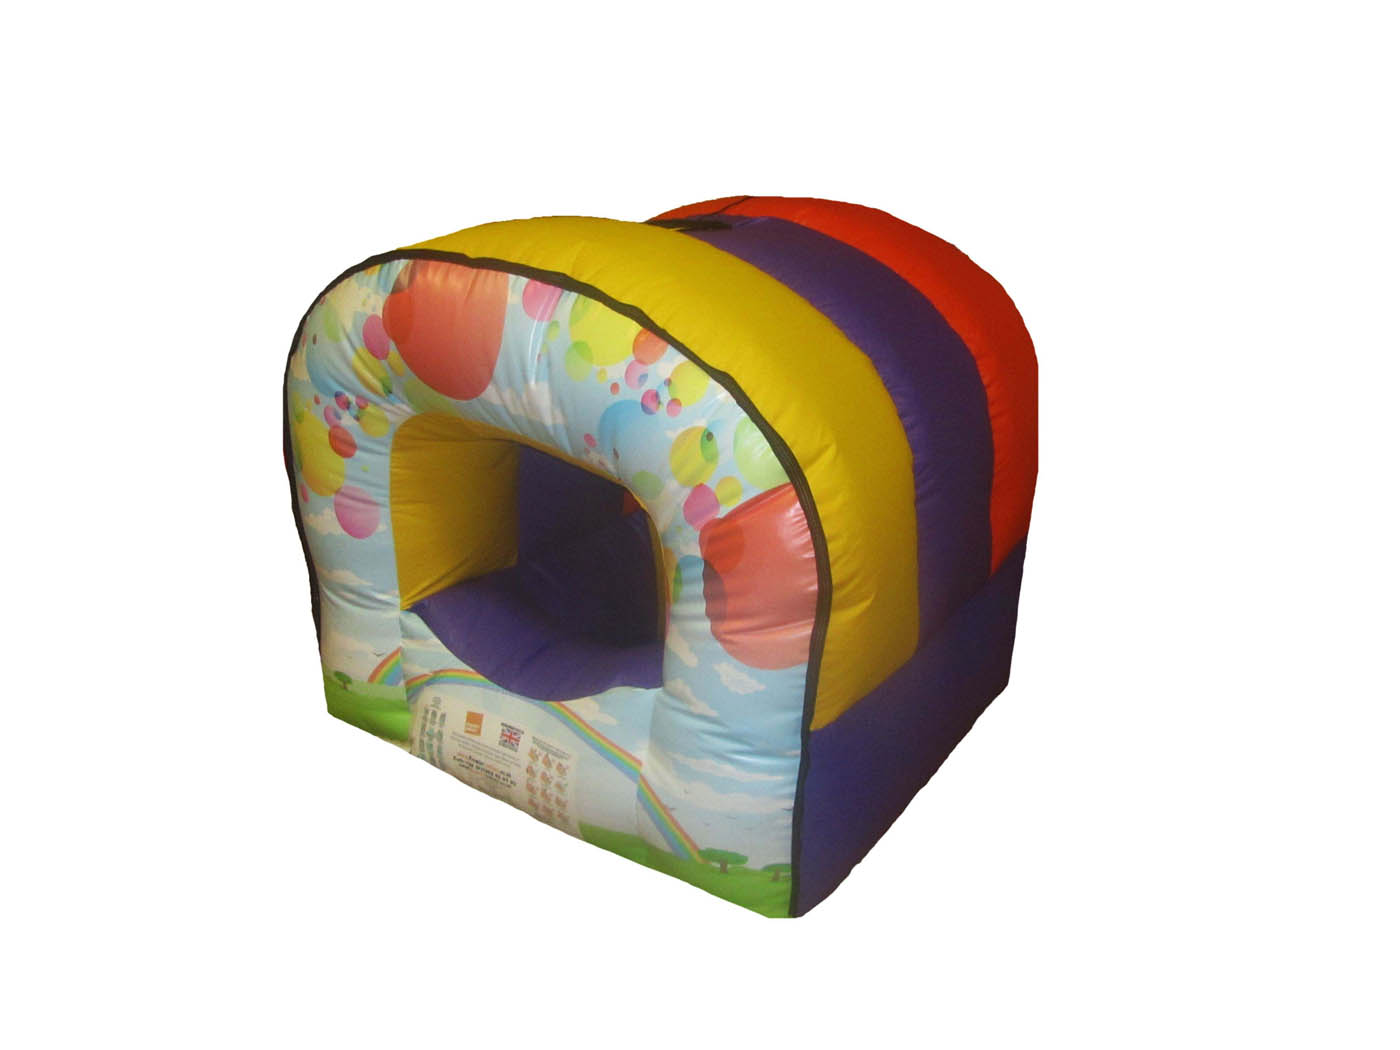 Commercial Childrens Soft Play Sensory Dome